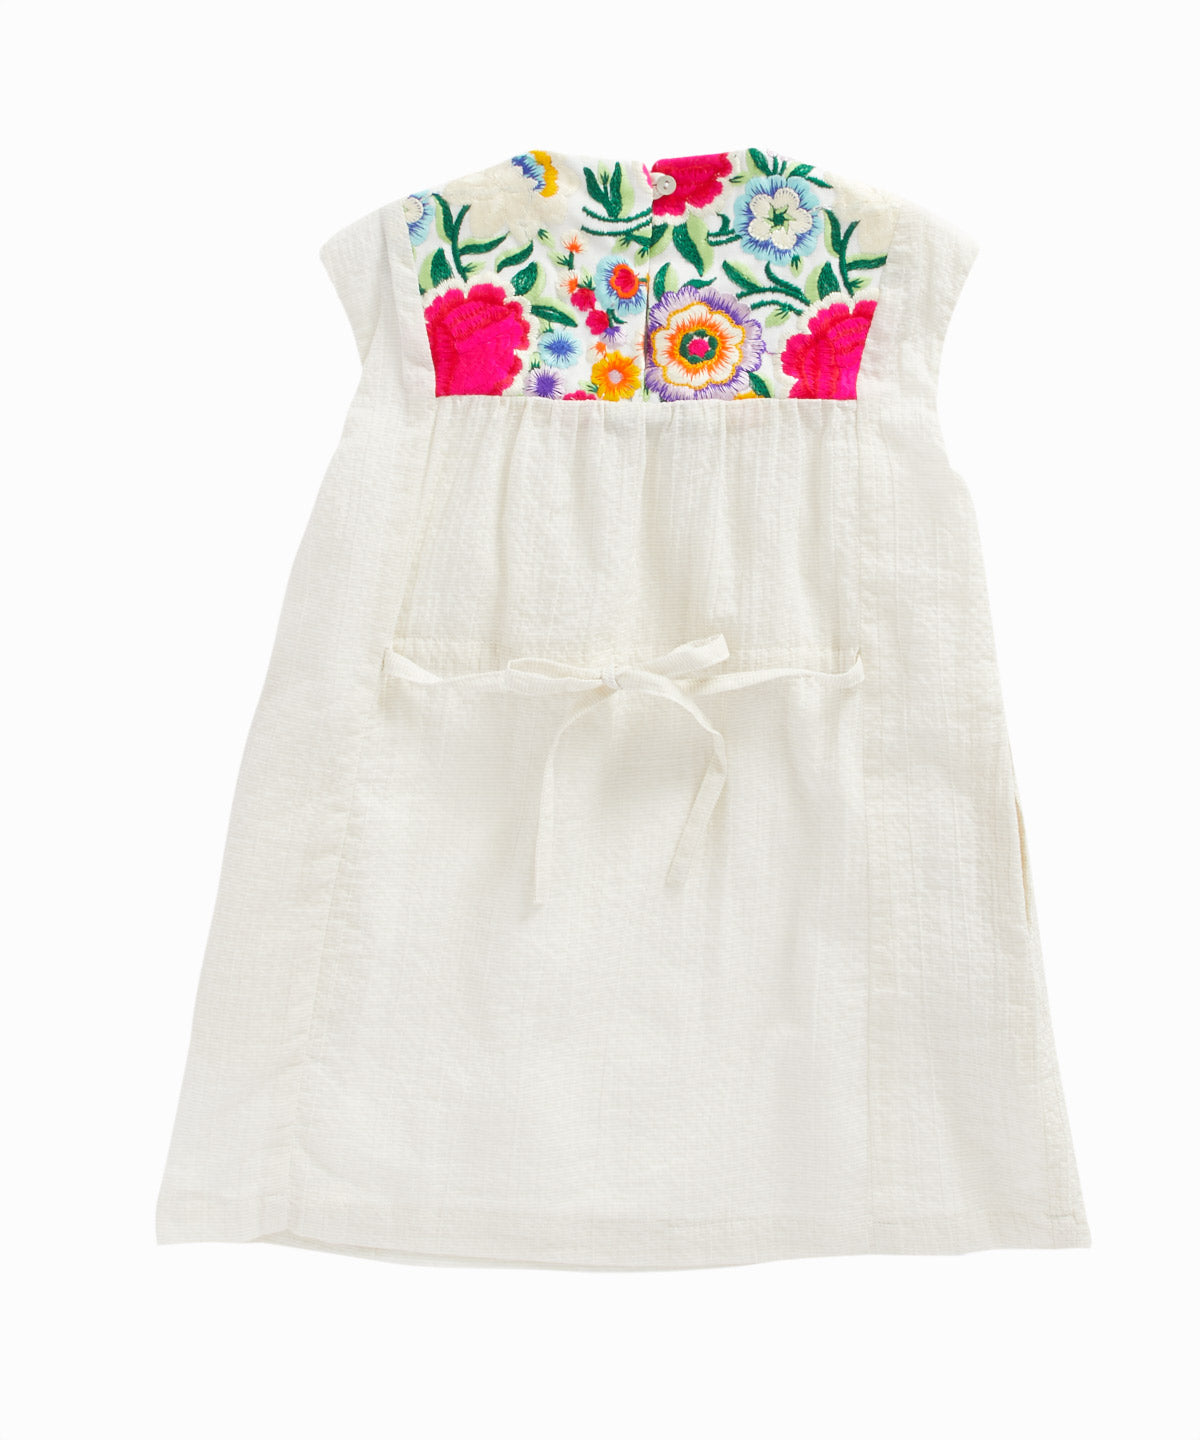 Ibiza Floral Embroidery Dress